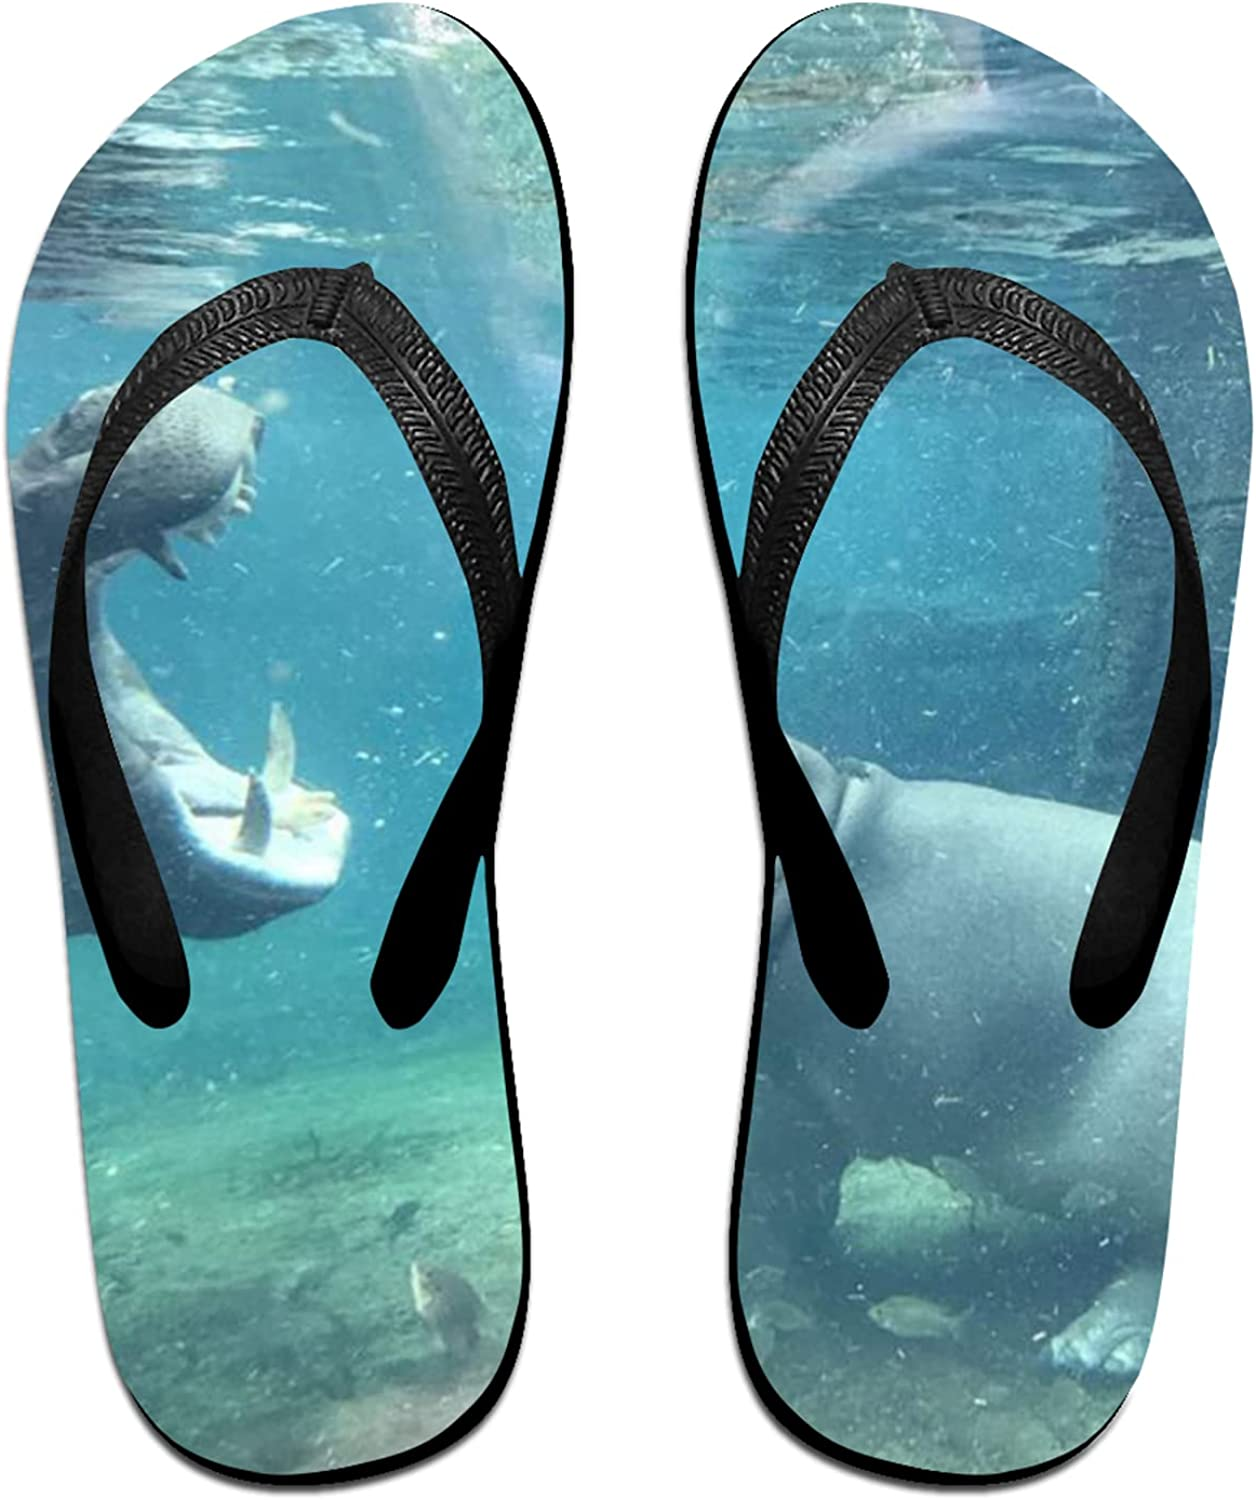 Women's Men's Flip Flop Slippers Max 62% OFF Beach Adults Hippo Classical Courier shipping free